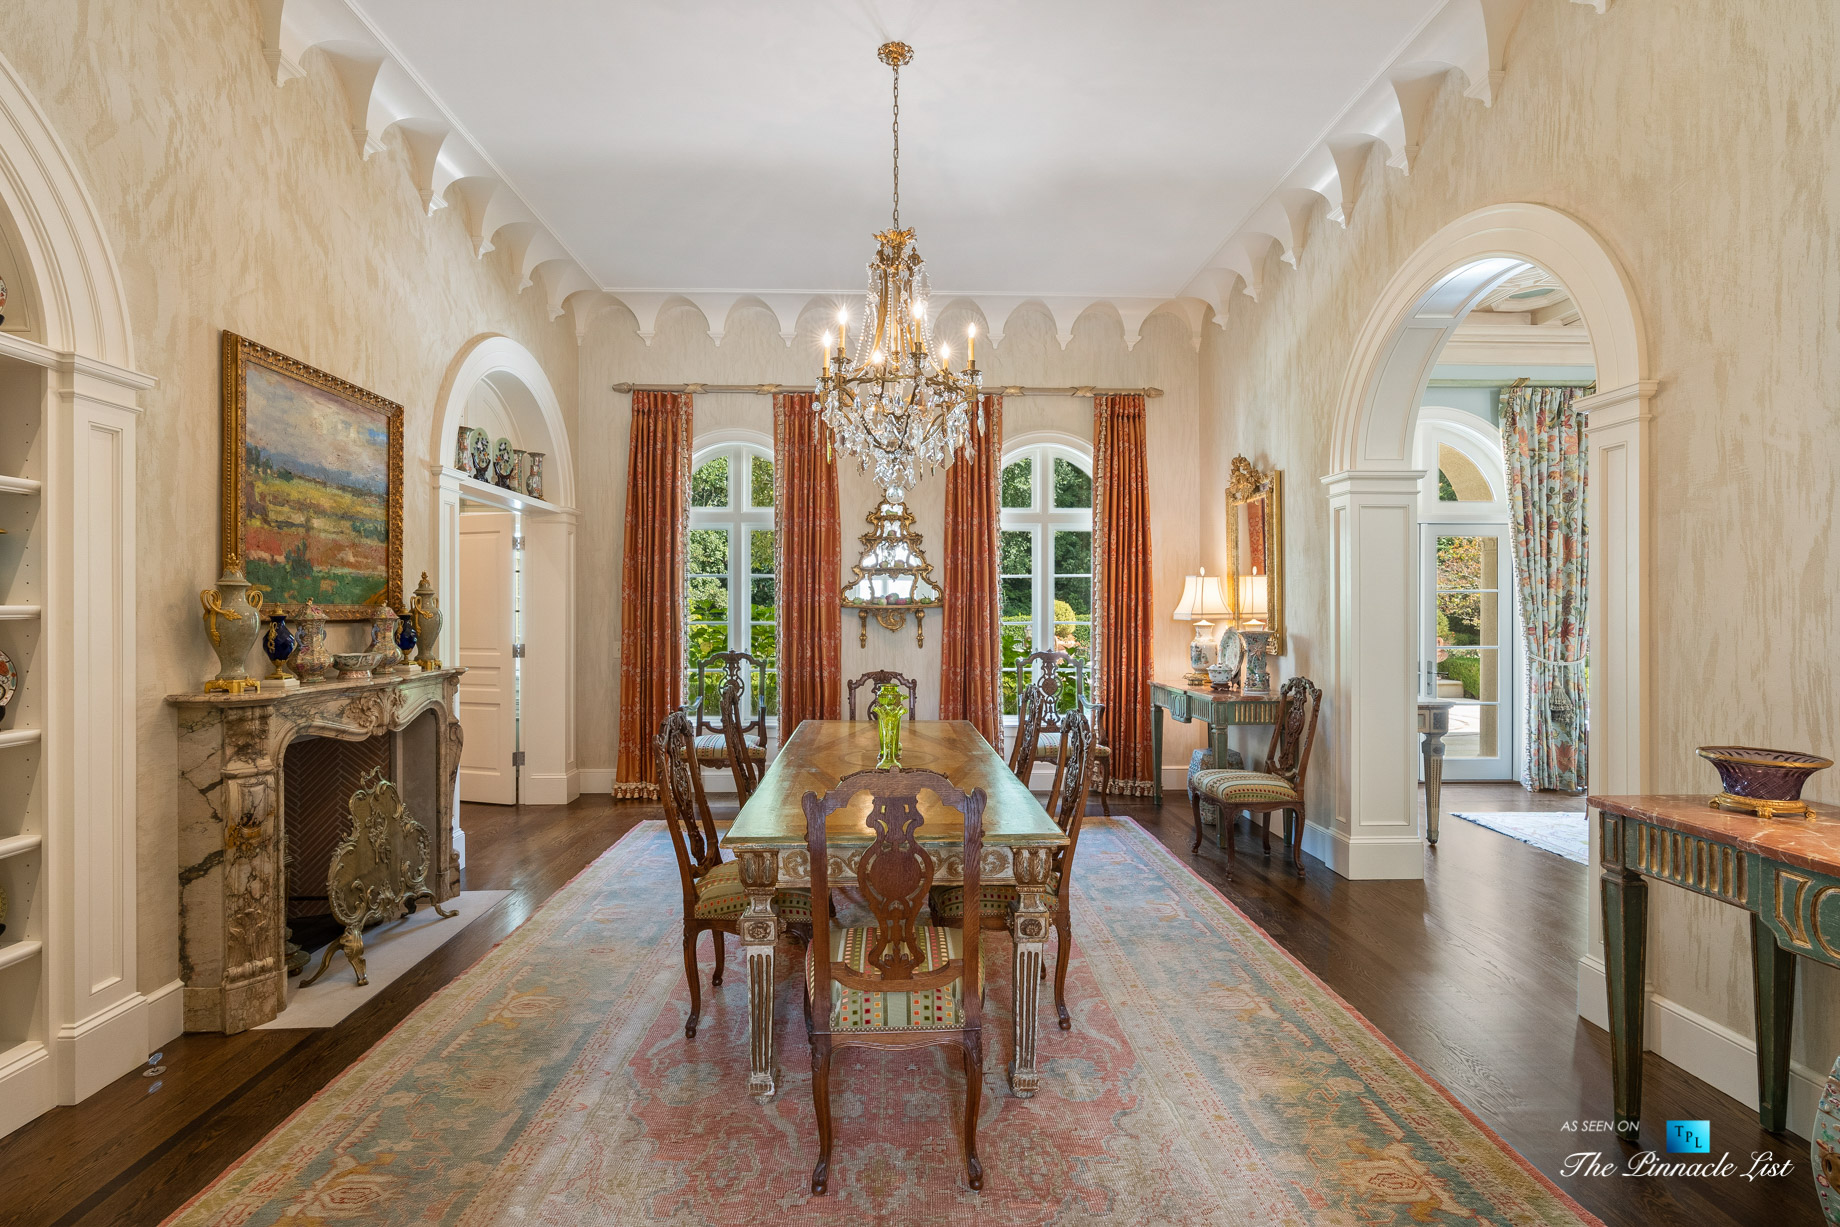 439 Blackland Rd NW, Atlanta, GA, USA – Formal Dining Room with Fireplace – Luxury Real Estate – Tuxedo Park Mediterranean Mansion Home